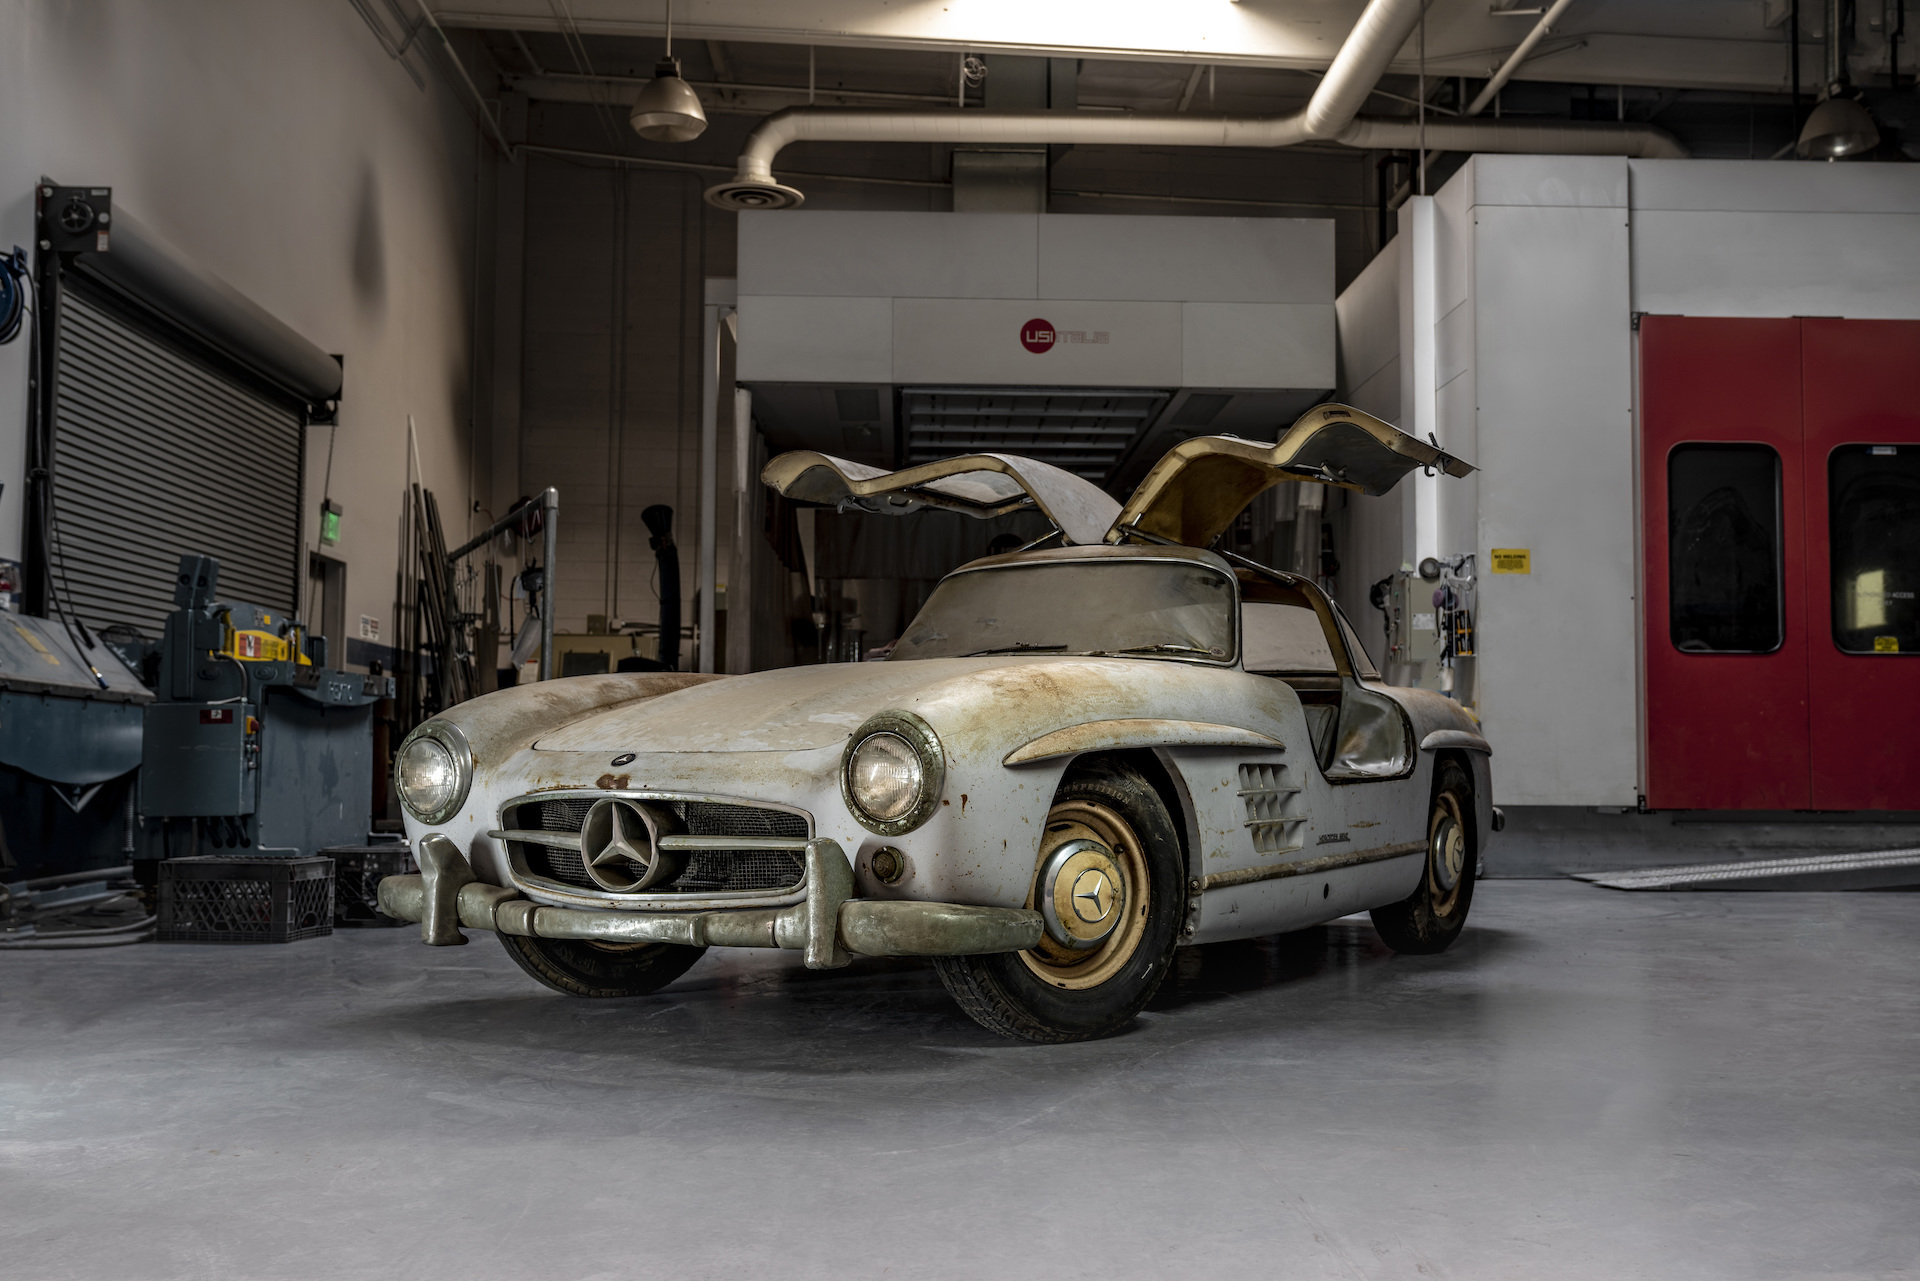 Image result for amelia island concours d'elegance mercedes gullwing